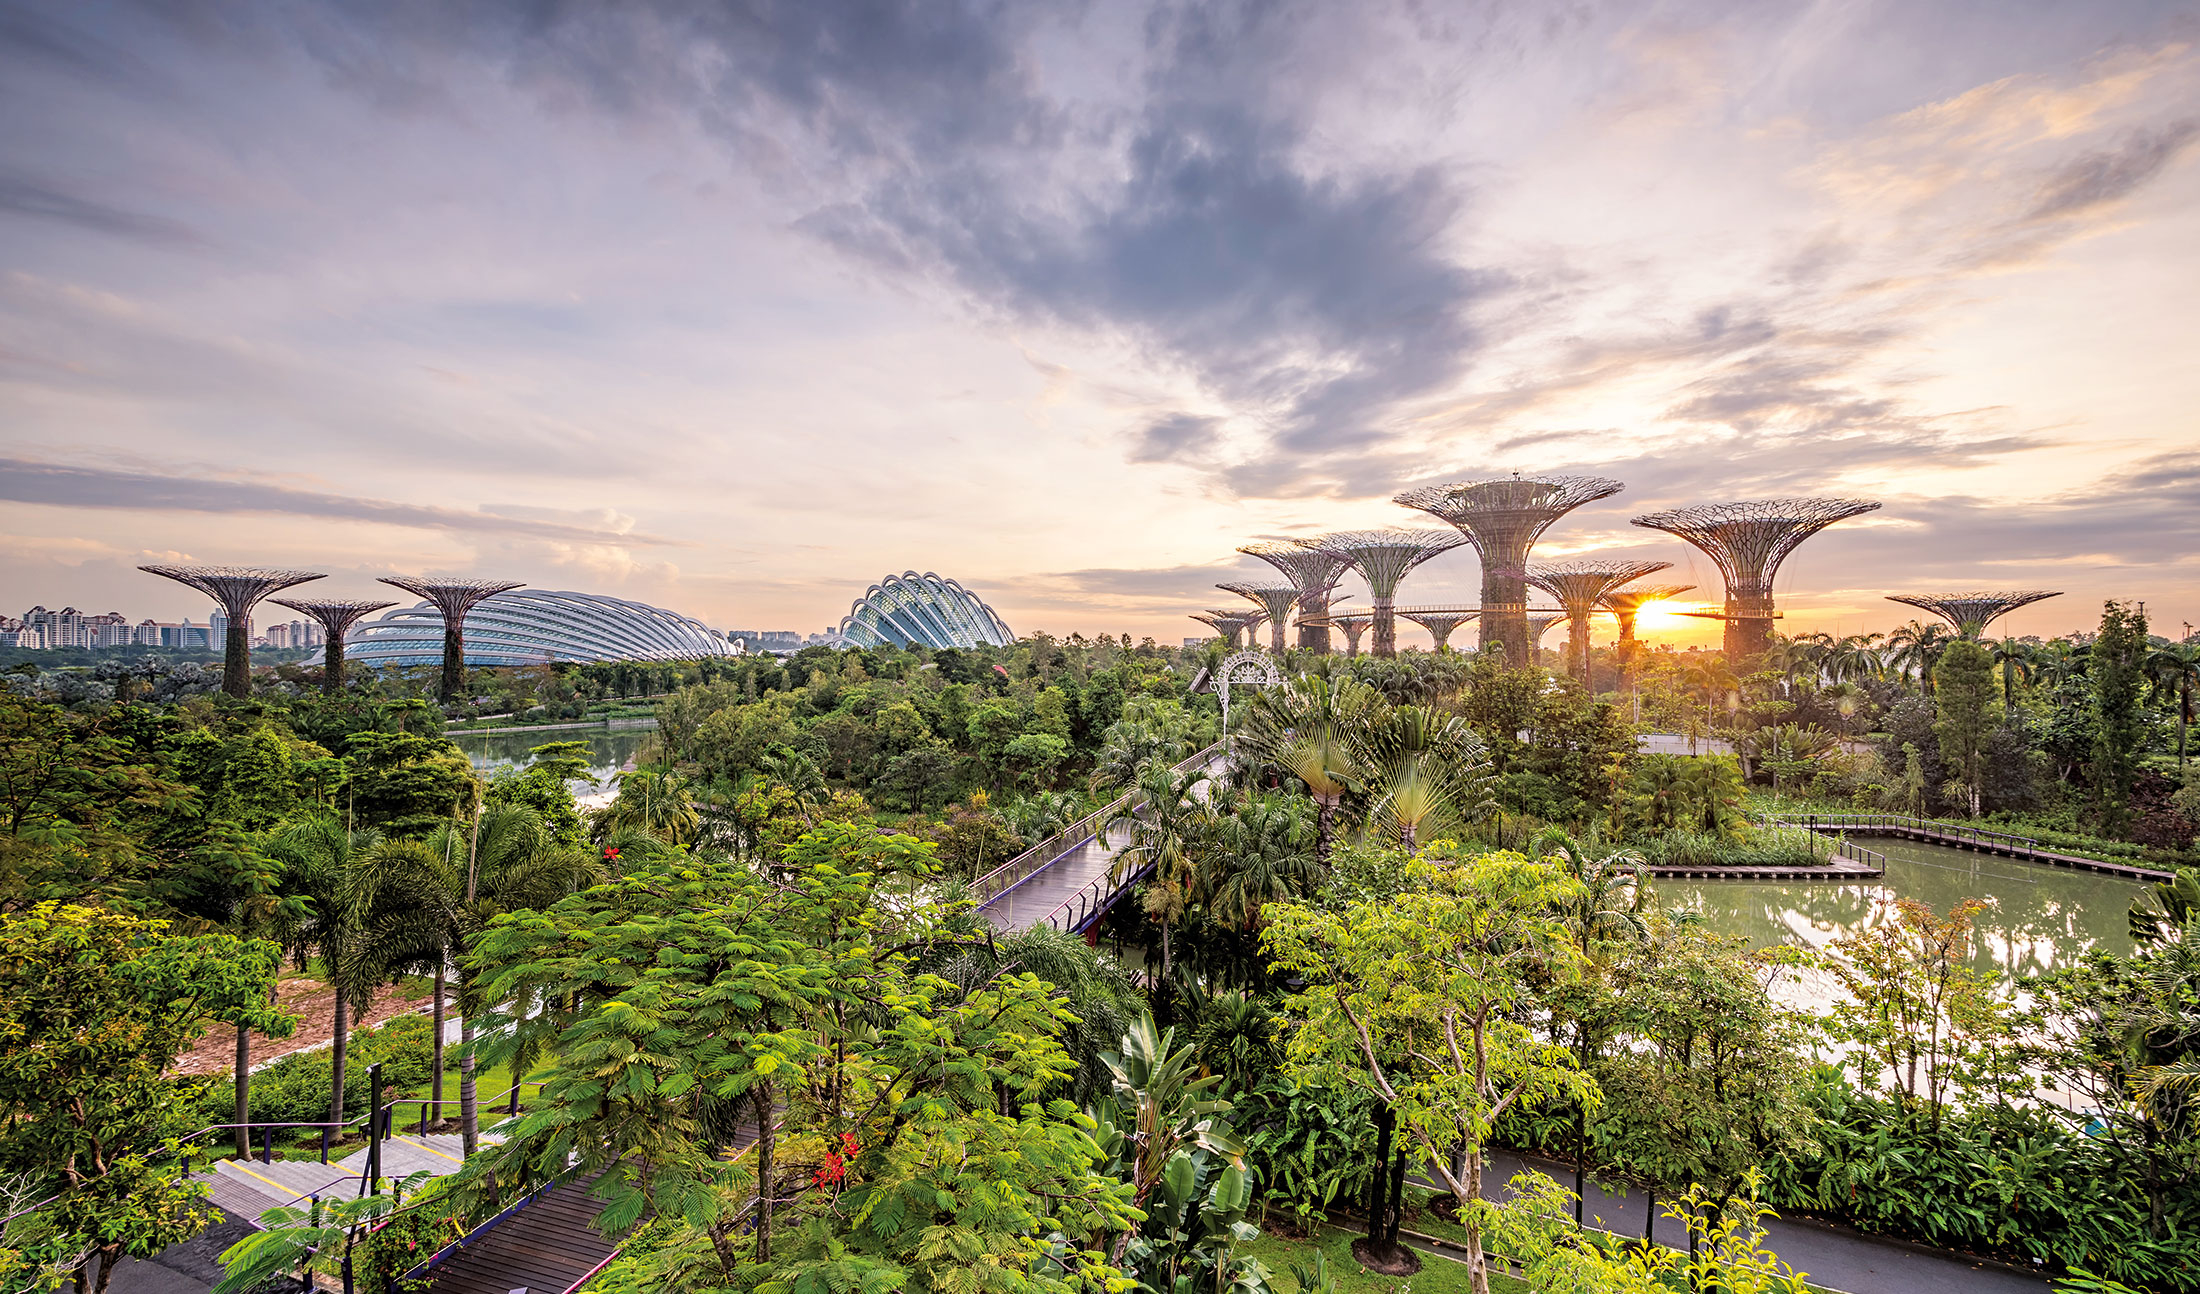 Singapore: the living city